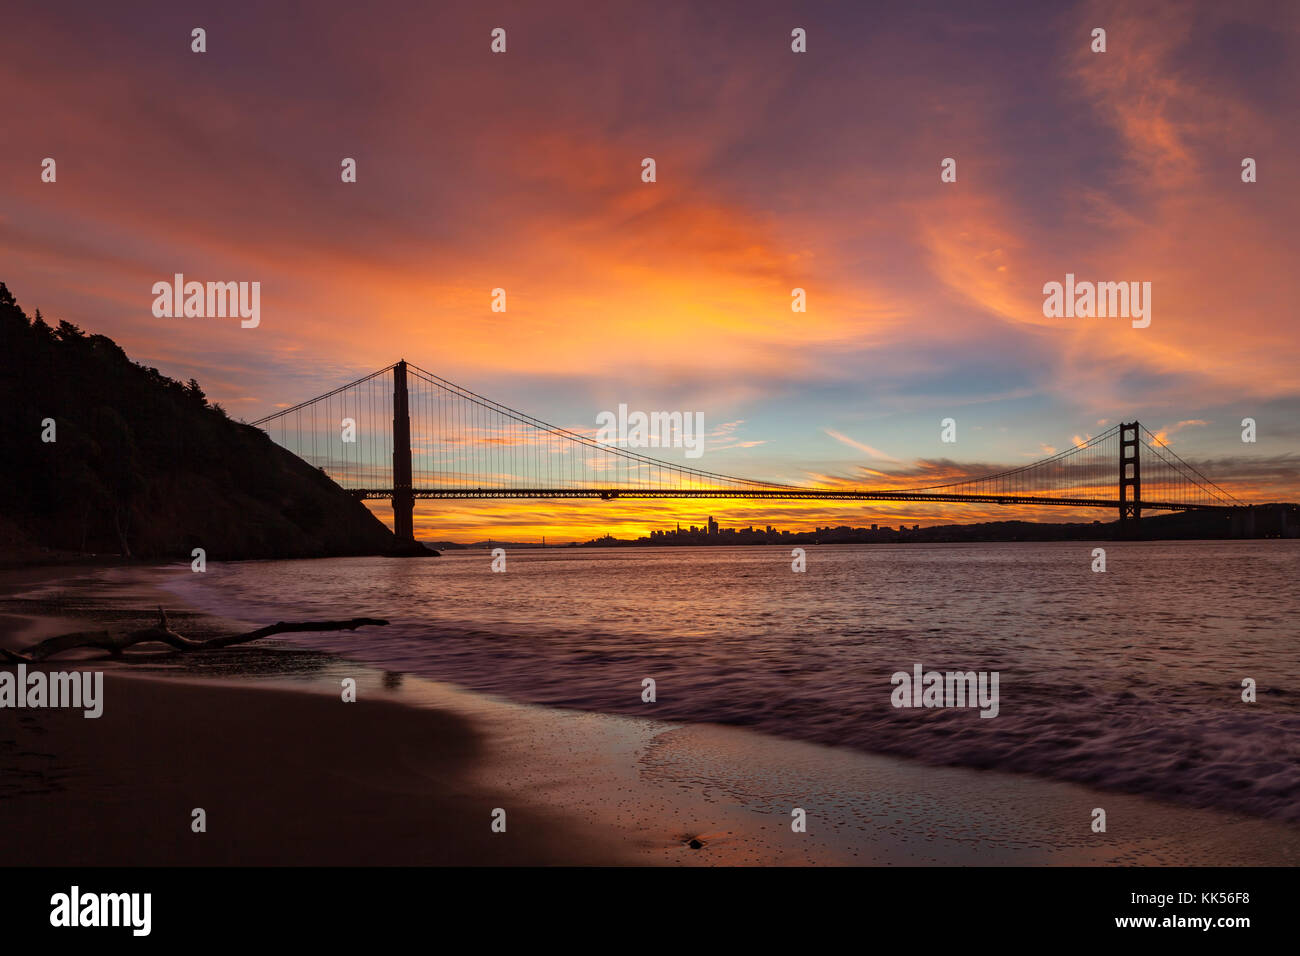 Golden Gate Bridge and San Francisco at dawn viewed from Kirby Cove. - Stock Image